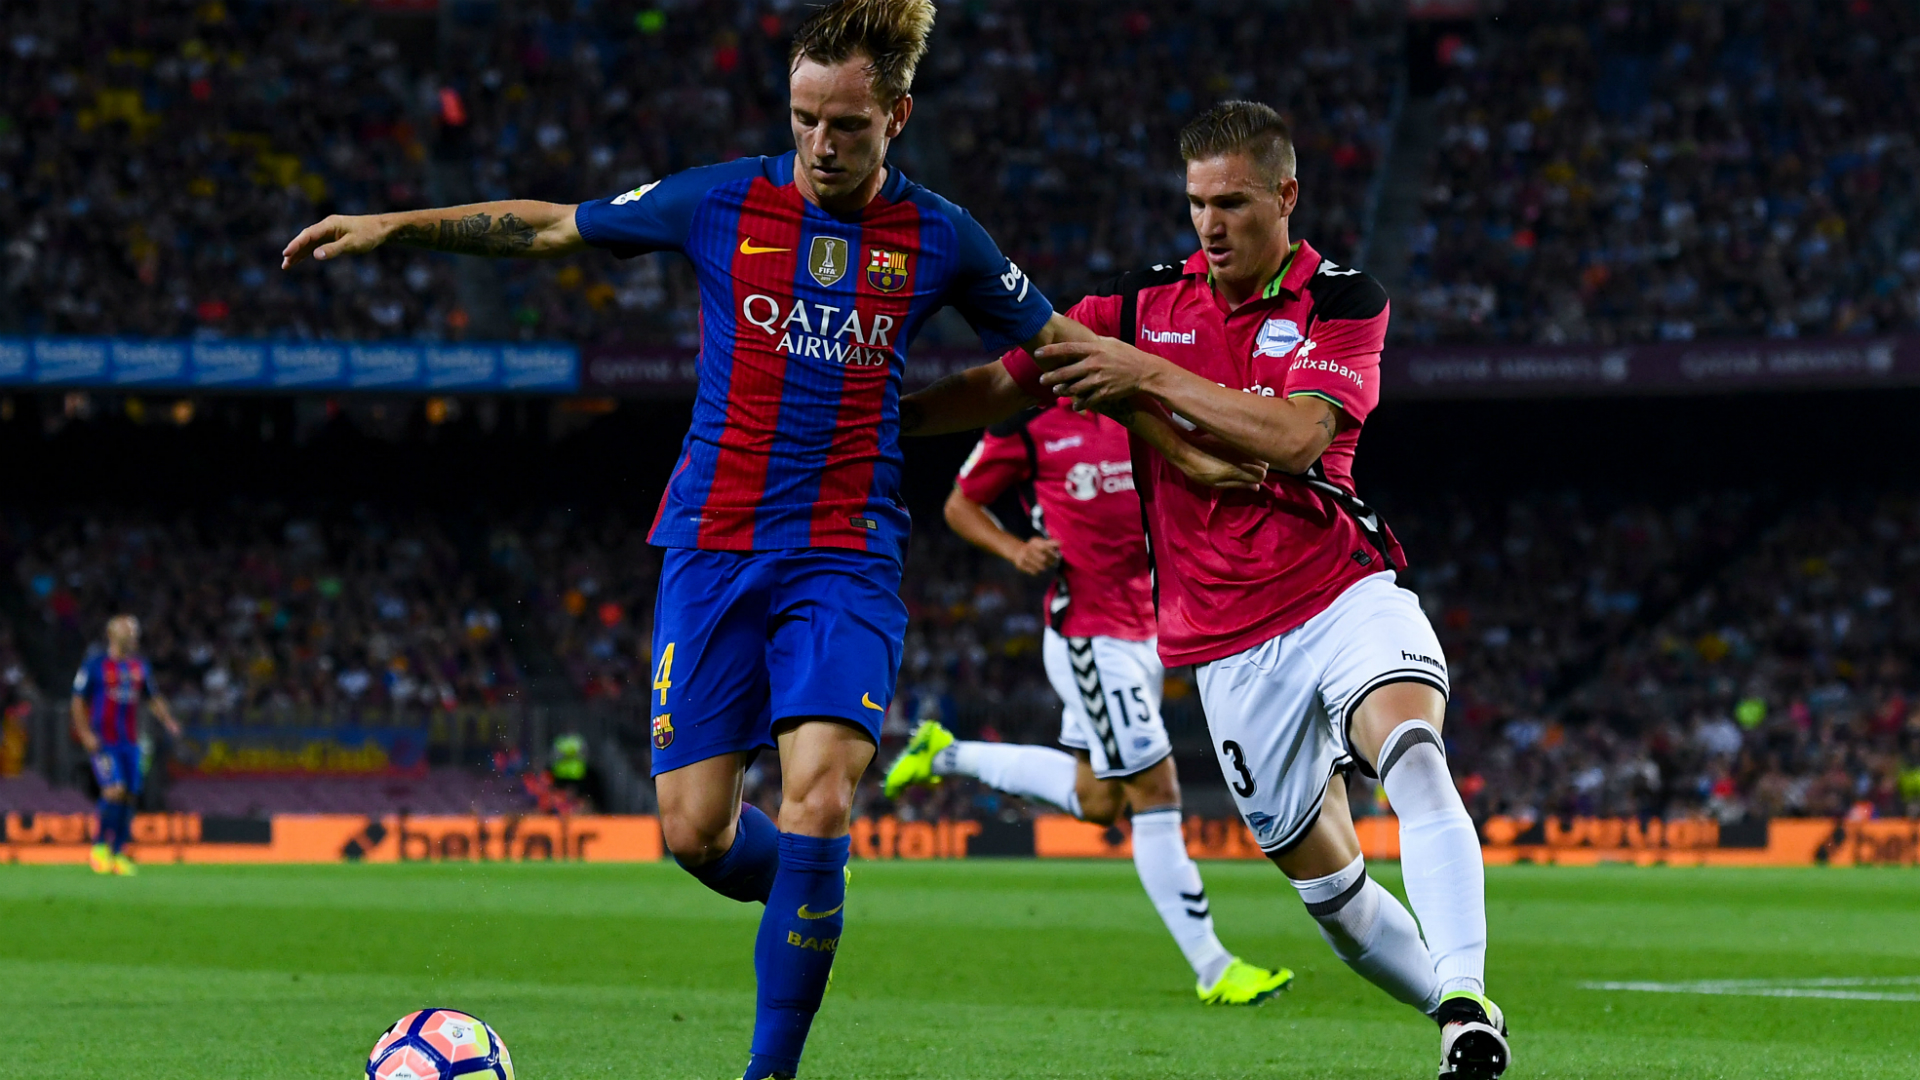 Liga, clamoroso: Barcellona ko in casa contro l'Alaves